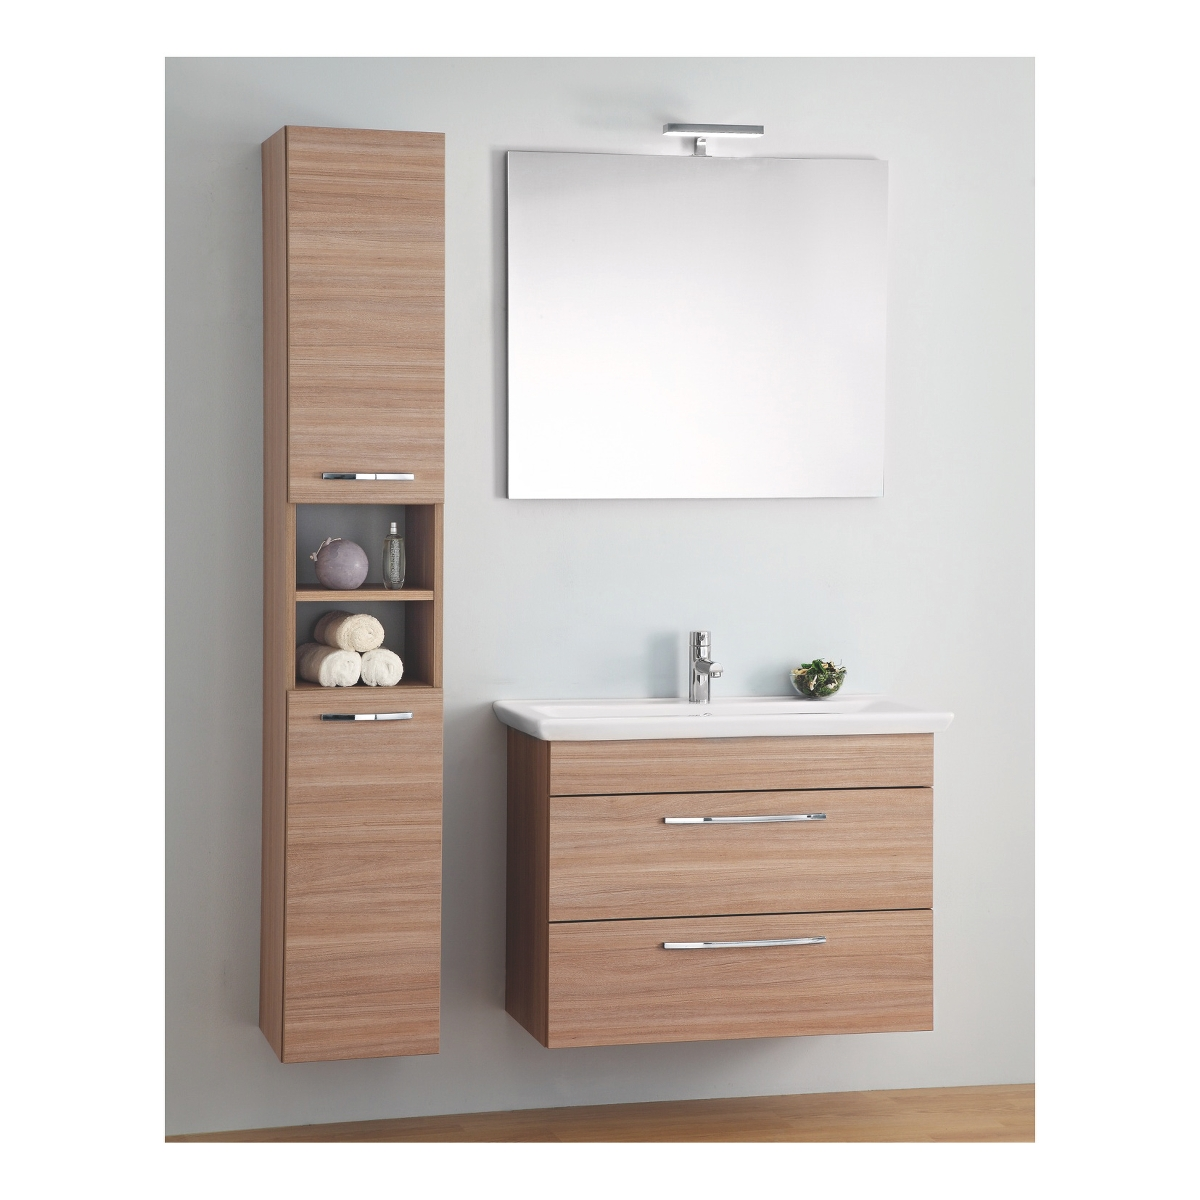 Leroy merlin mobile bagno gi 115 mobili bagno bathrooms pinterest wood bathroom and - Portarotolo bagno leroy merlin ...